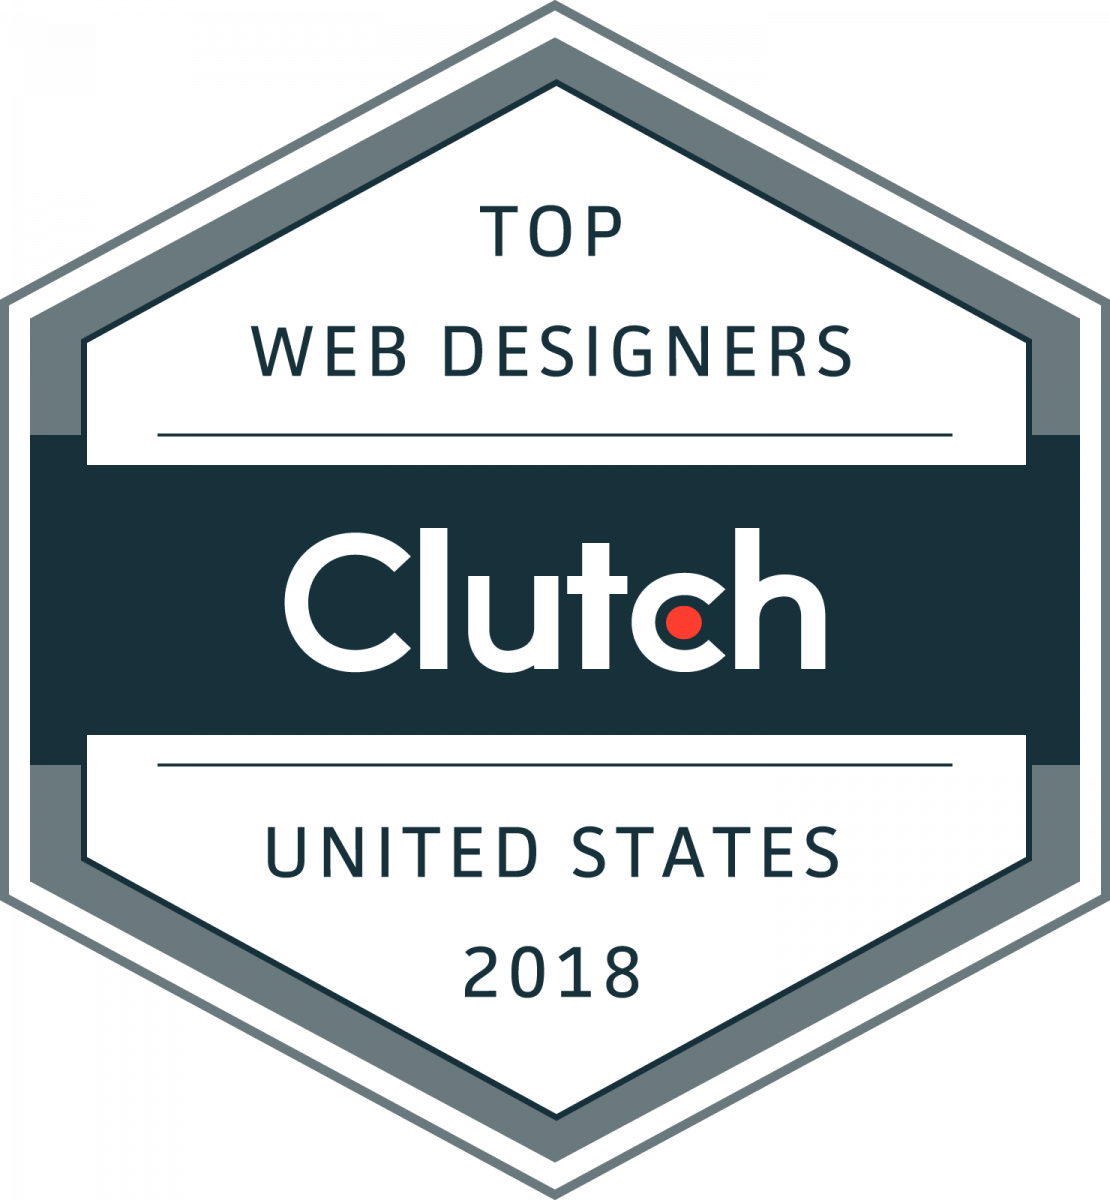 Clutch Top Web Designers 2018